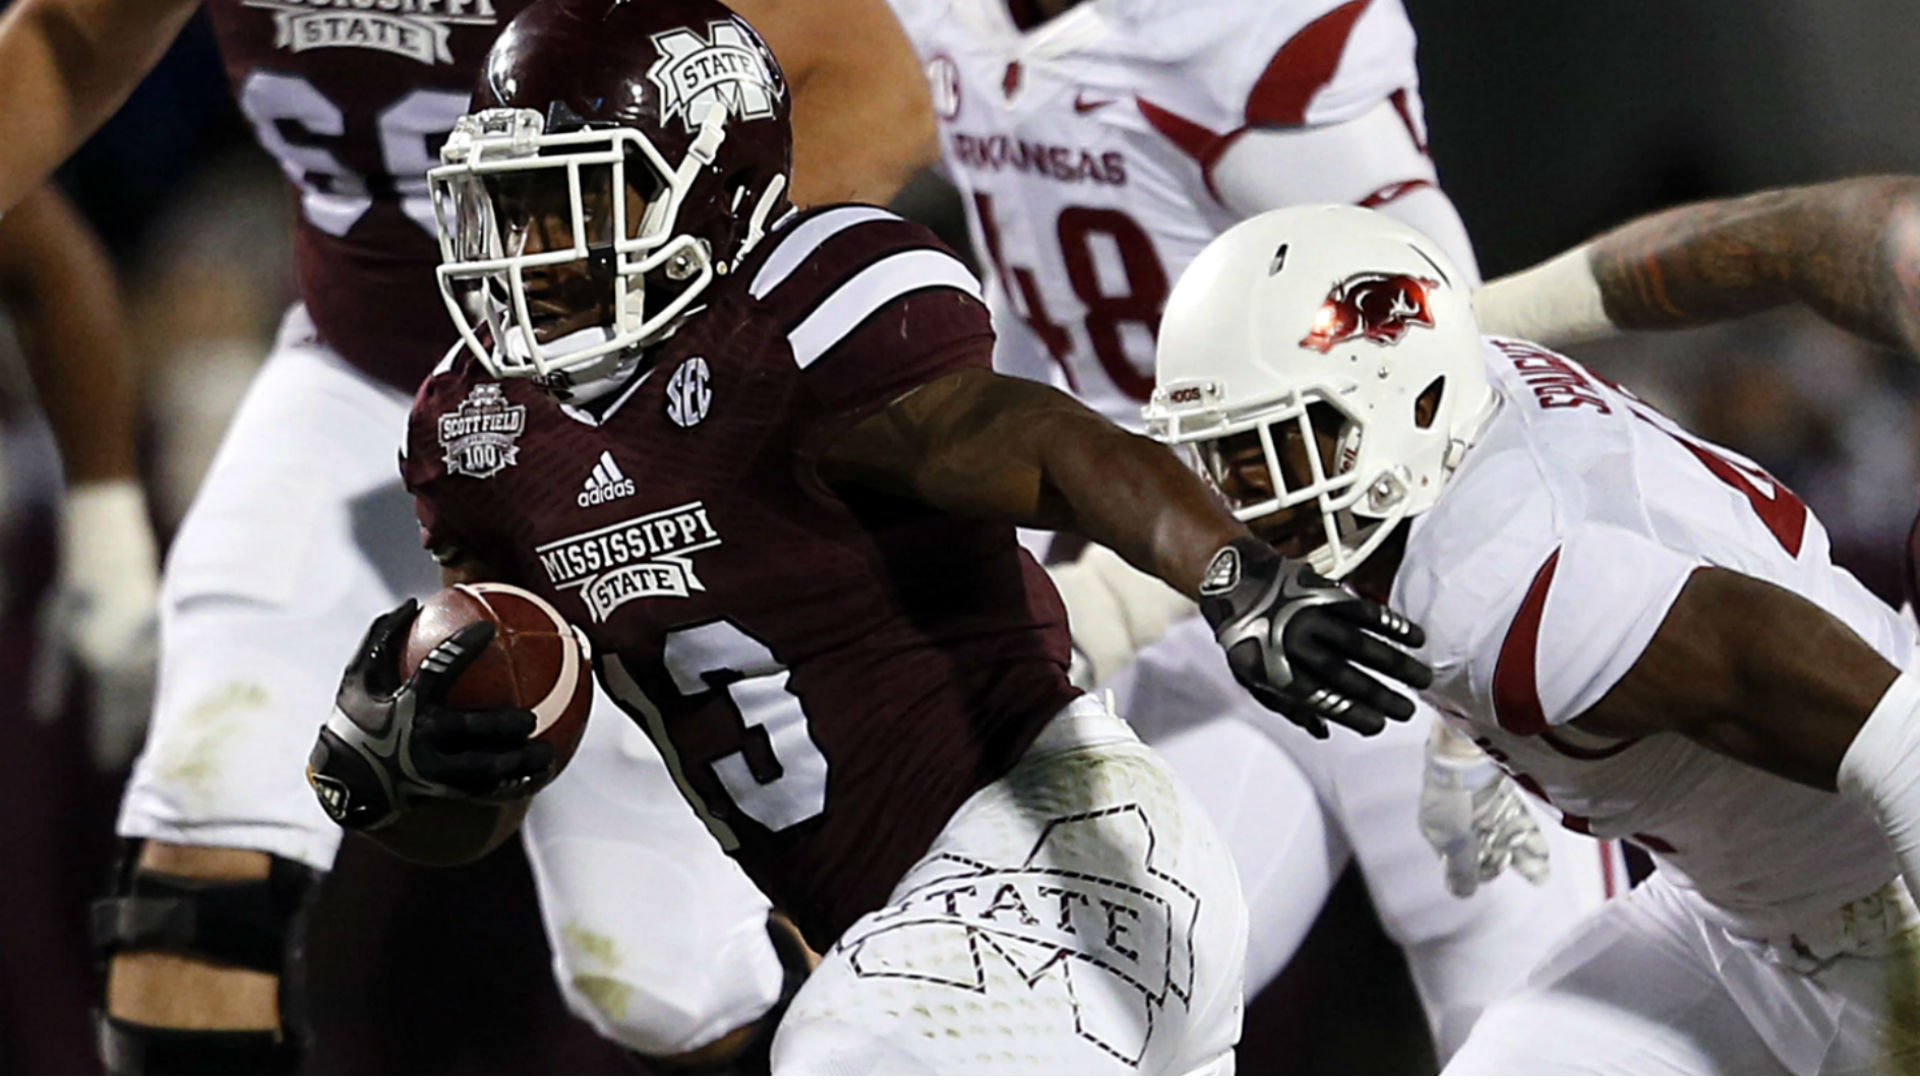 Mississippi State at Ole Miss betting preview and pick – Rebels playing spoiler role as home dogs